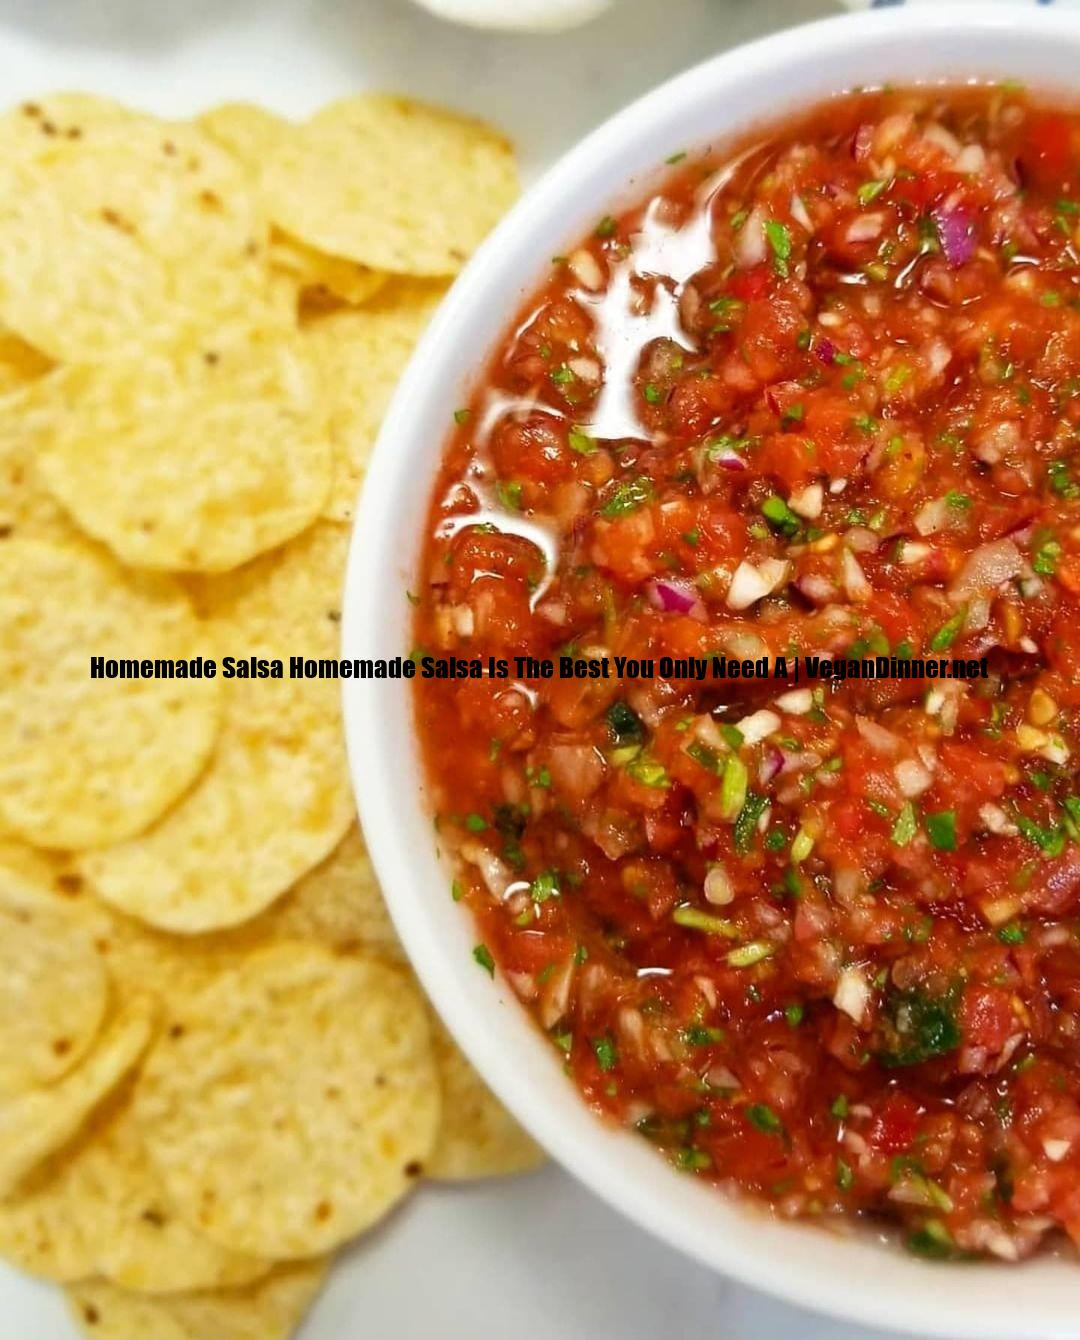 homemade salsa homemade salsa is the best you only need a display image aafa